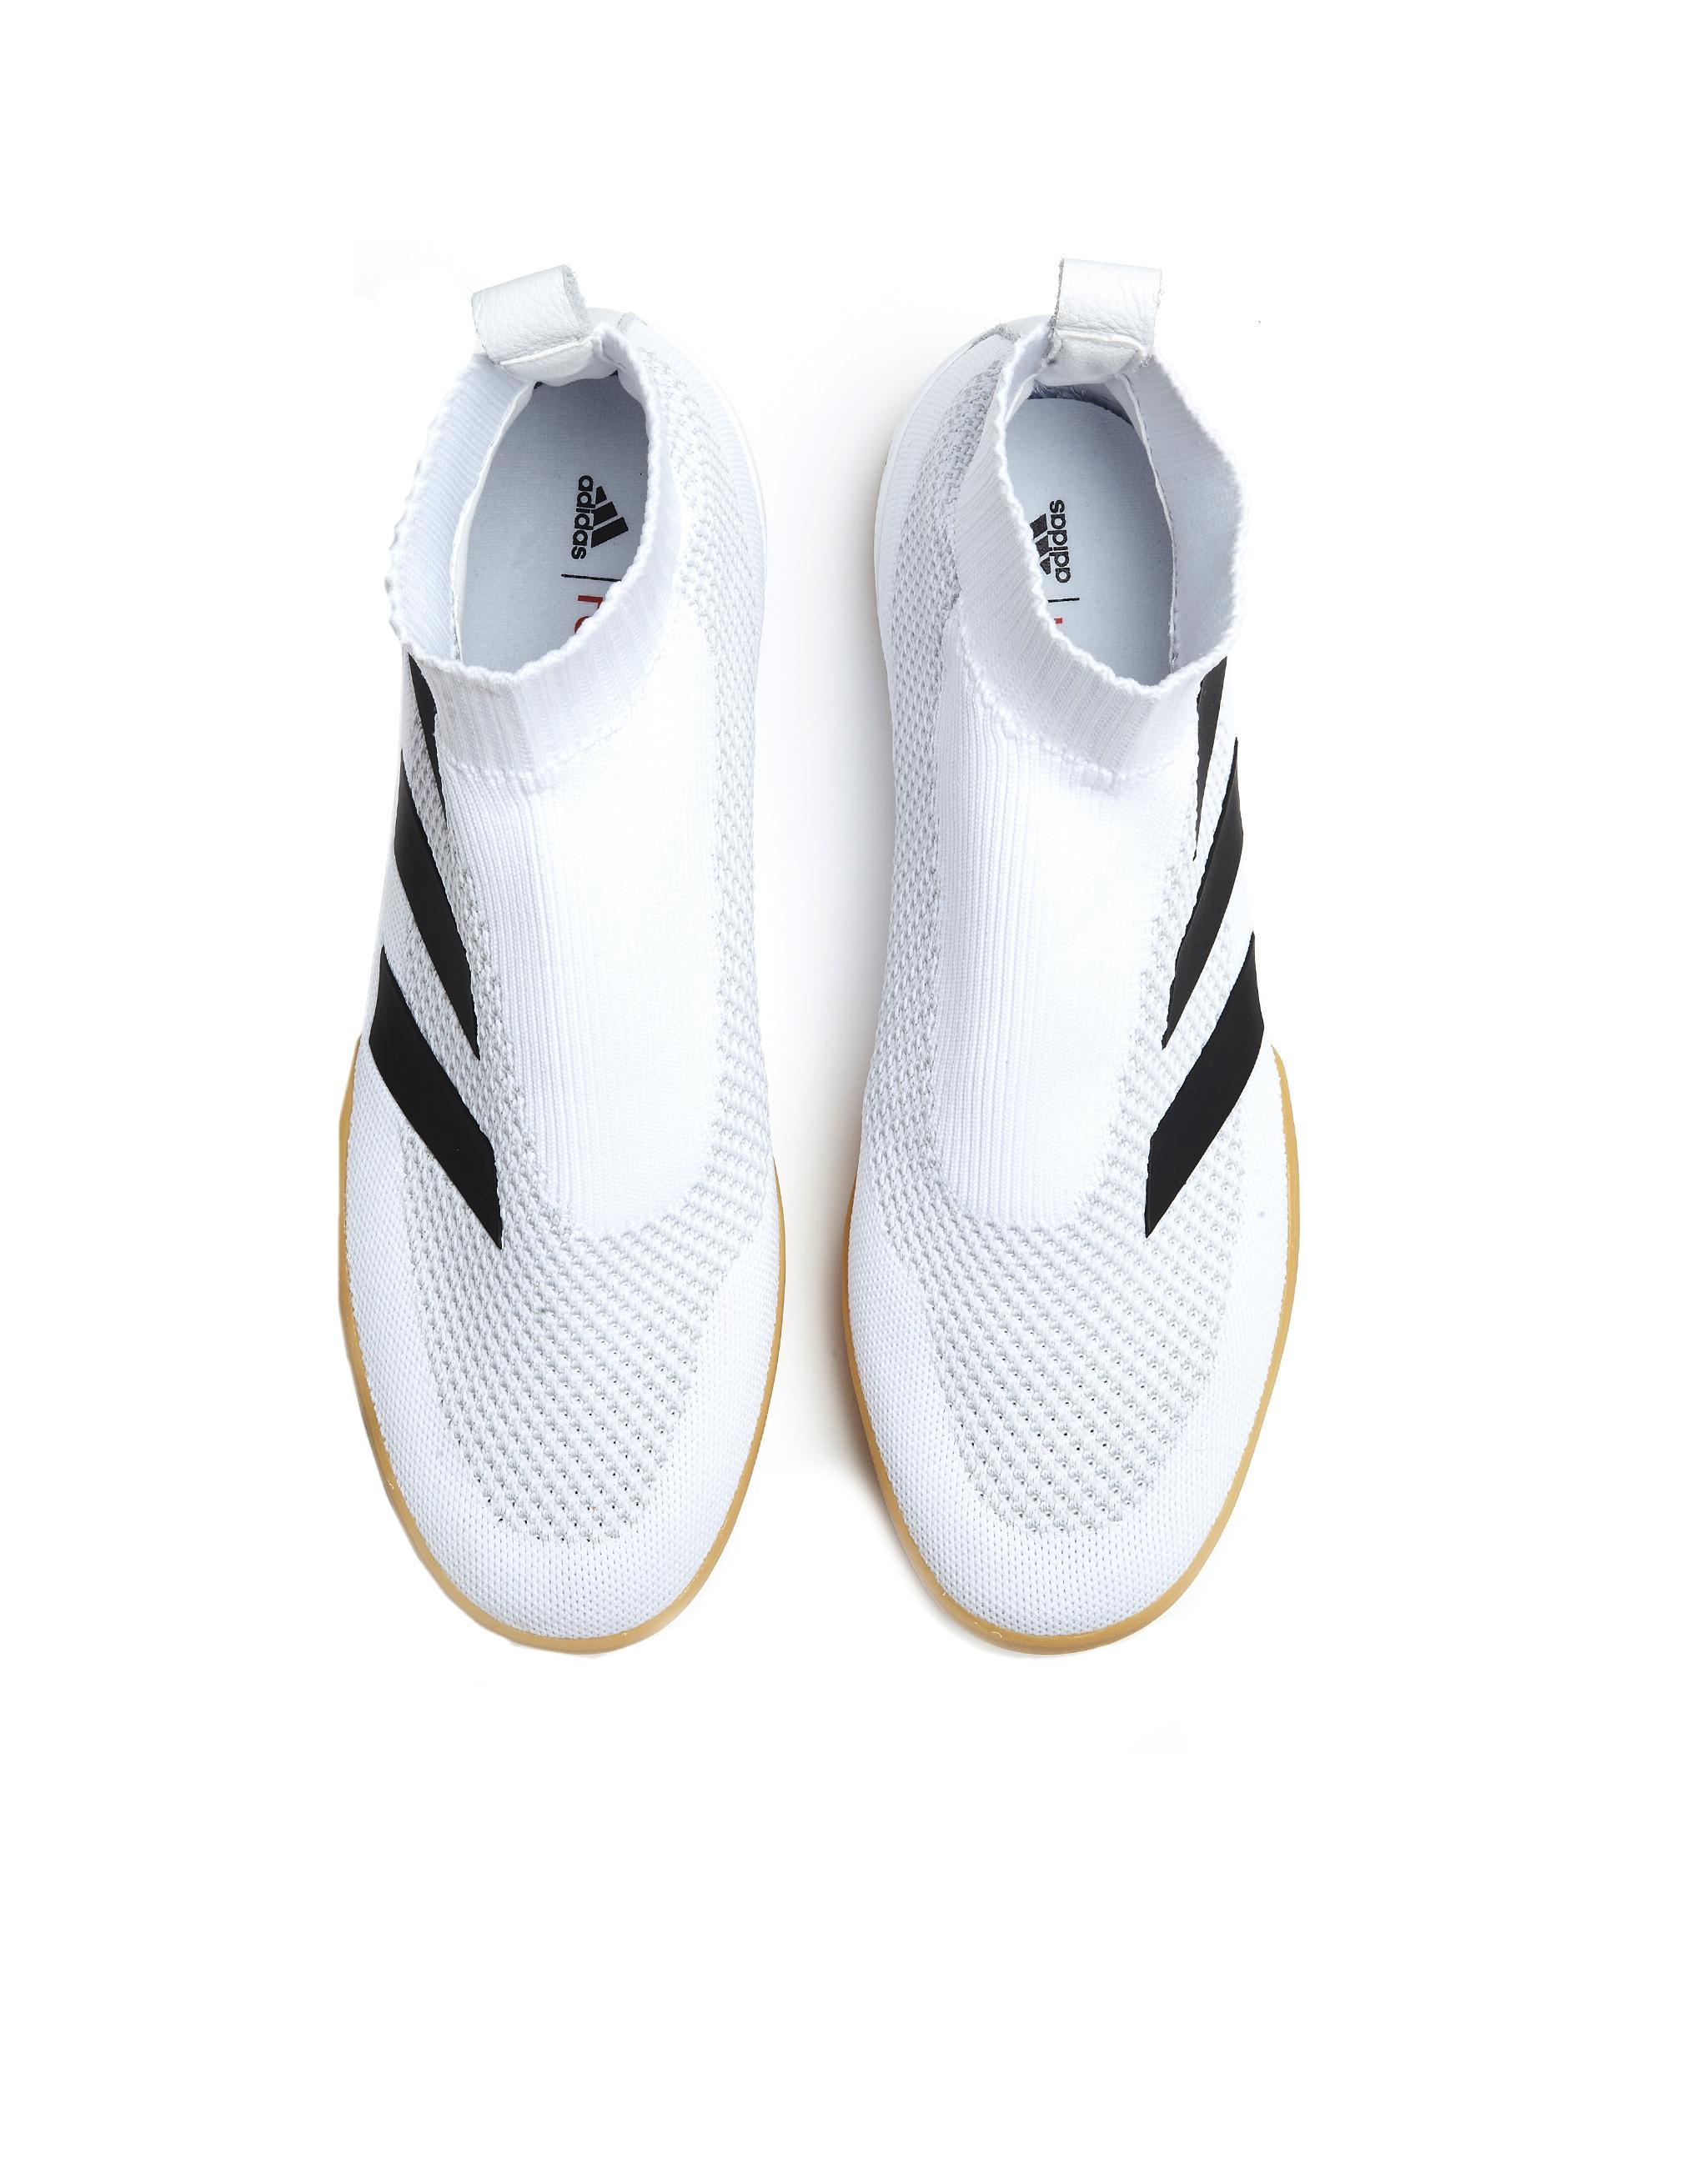 buy online 15ff8 01f55 Gosha Rubchinskiy Adidas Ace 16+ Super Shoes in White for Me